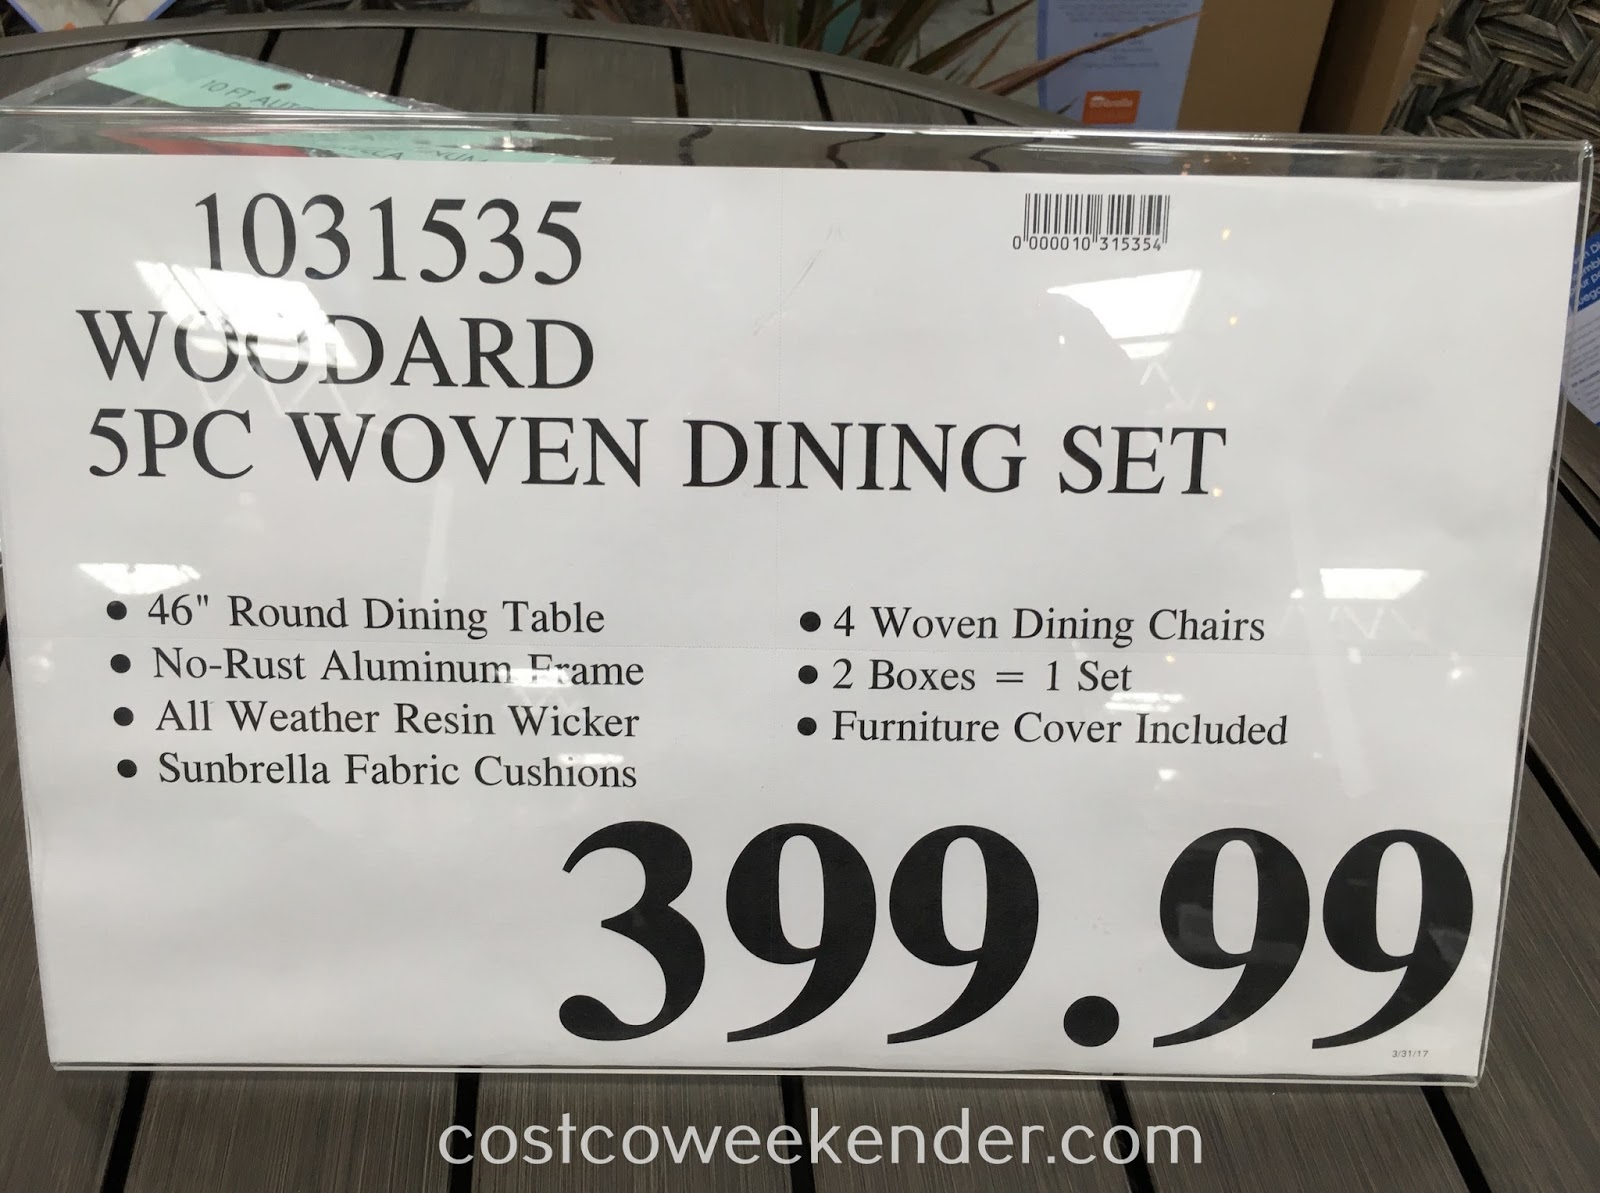 Deal for the Woodard 5-piece Woven Dining Set at Costco